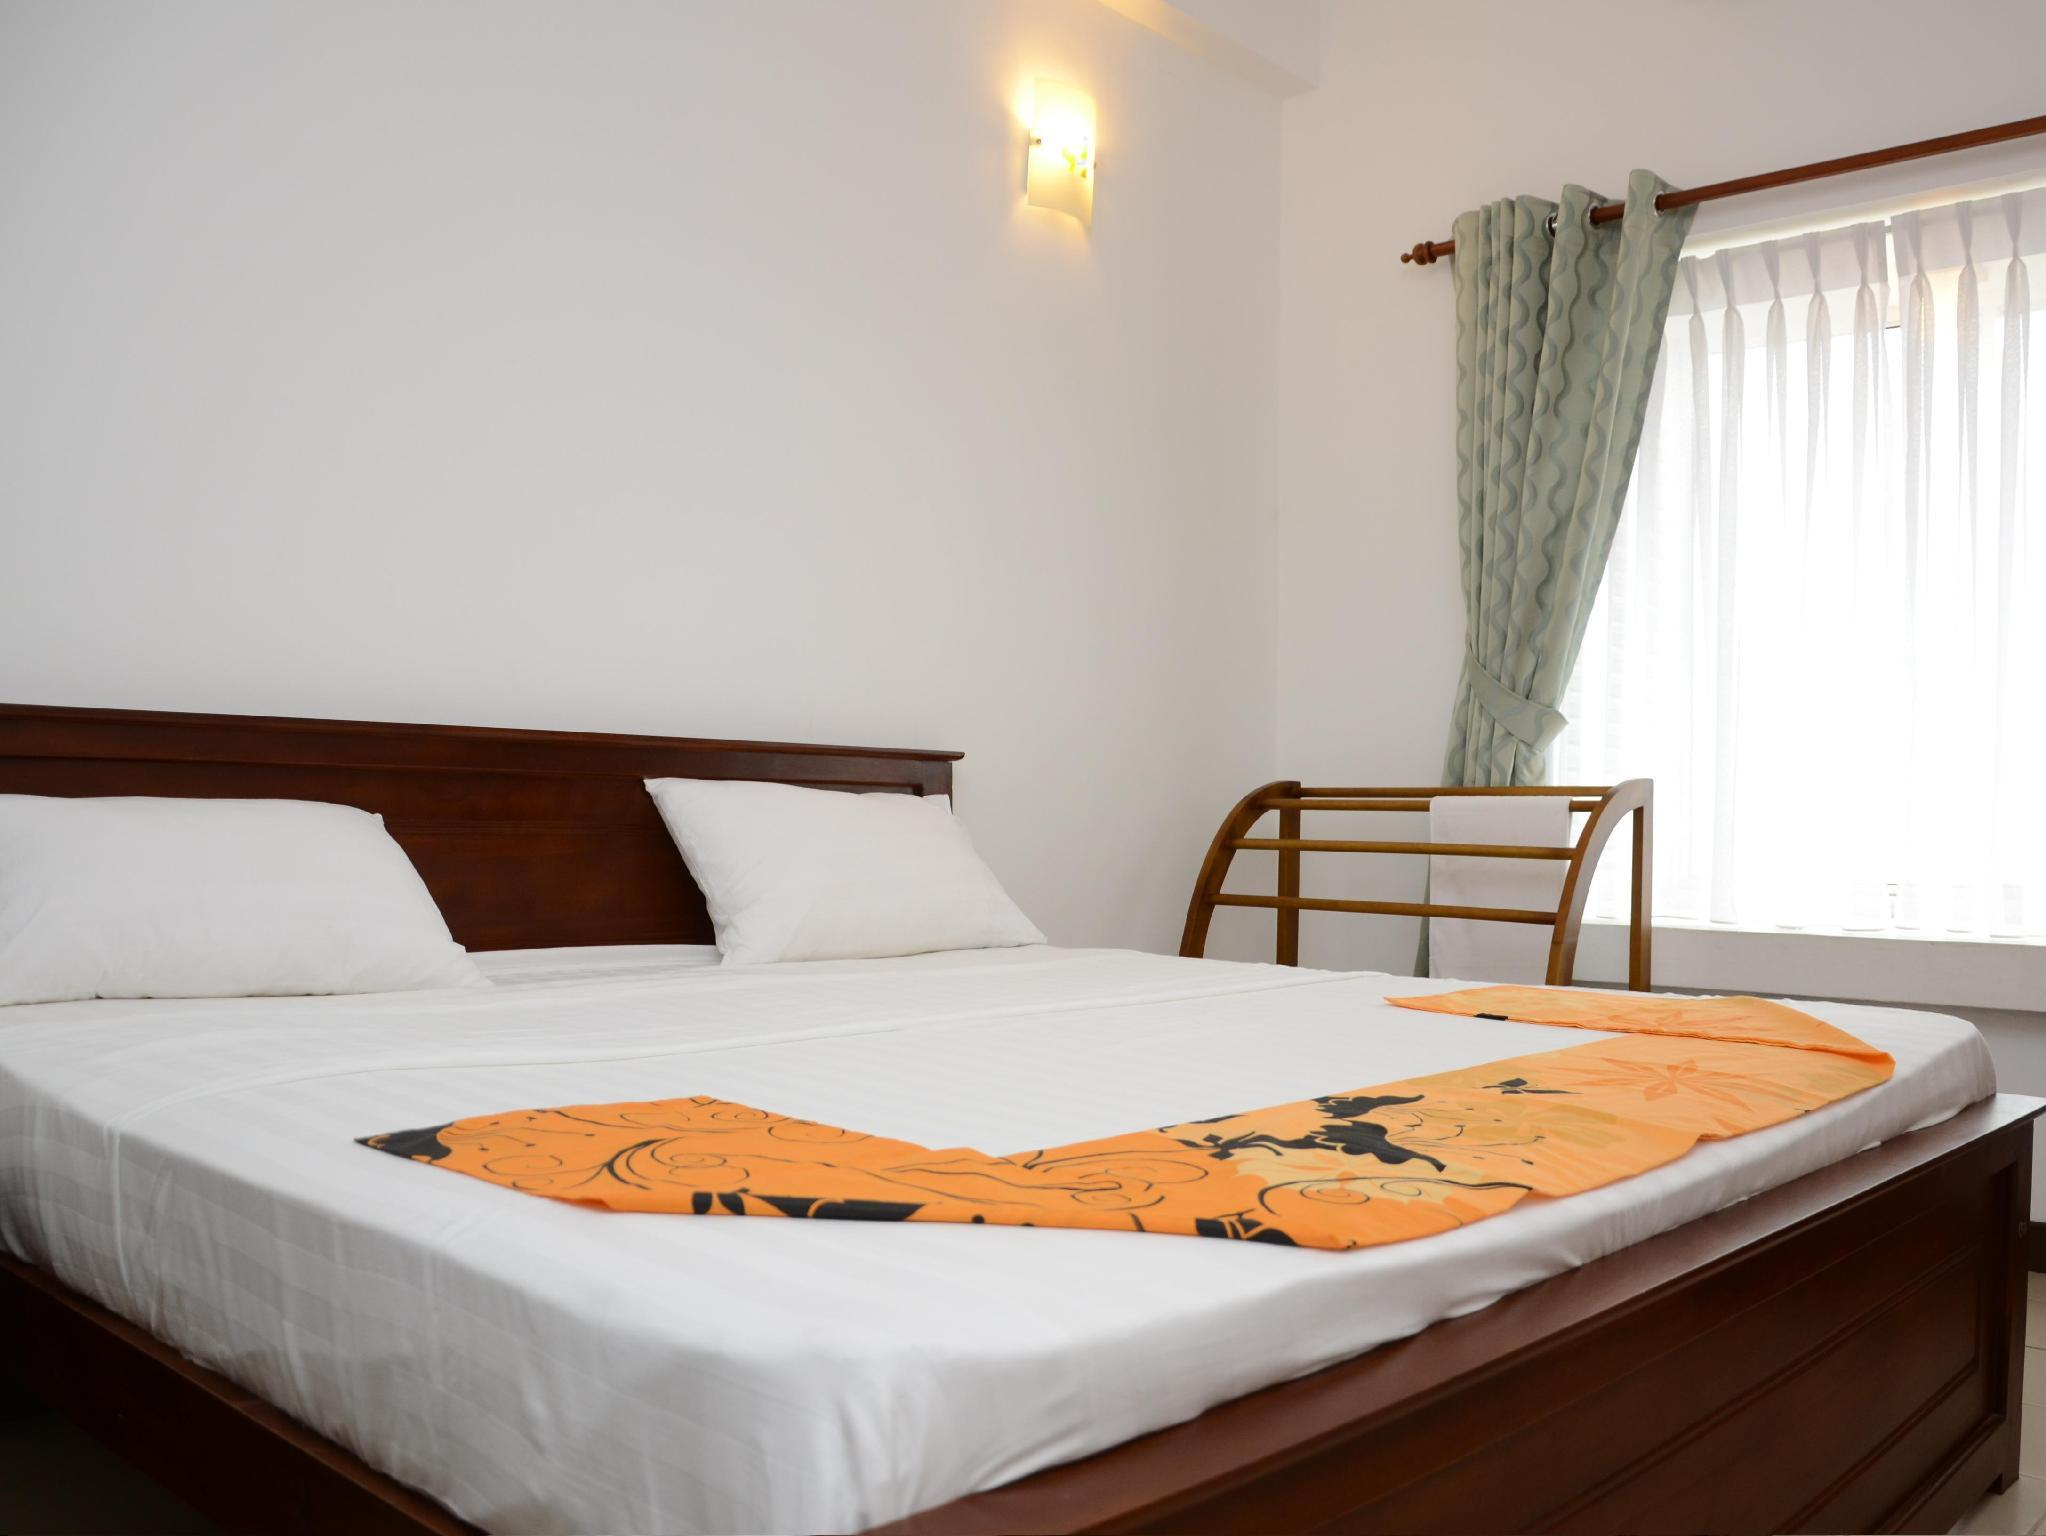 Kamar Deluxe Double dengan Pemandangan Laut (Deluxe Double Room with Sea View)